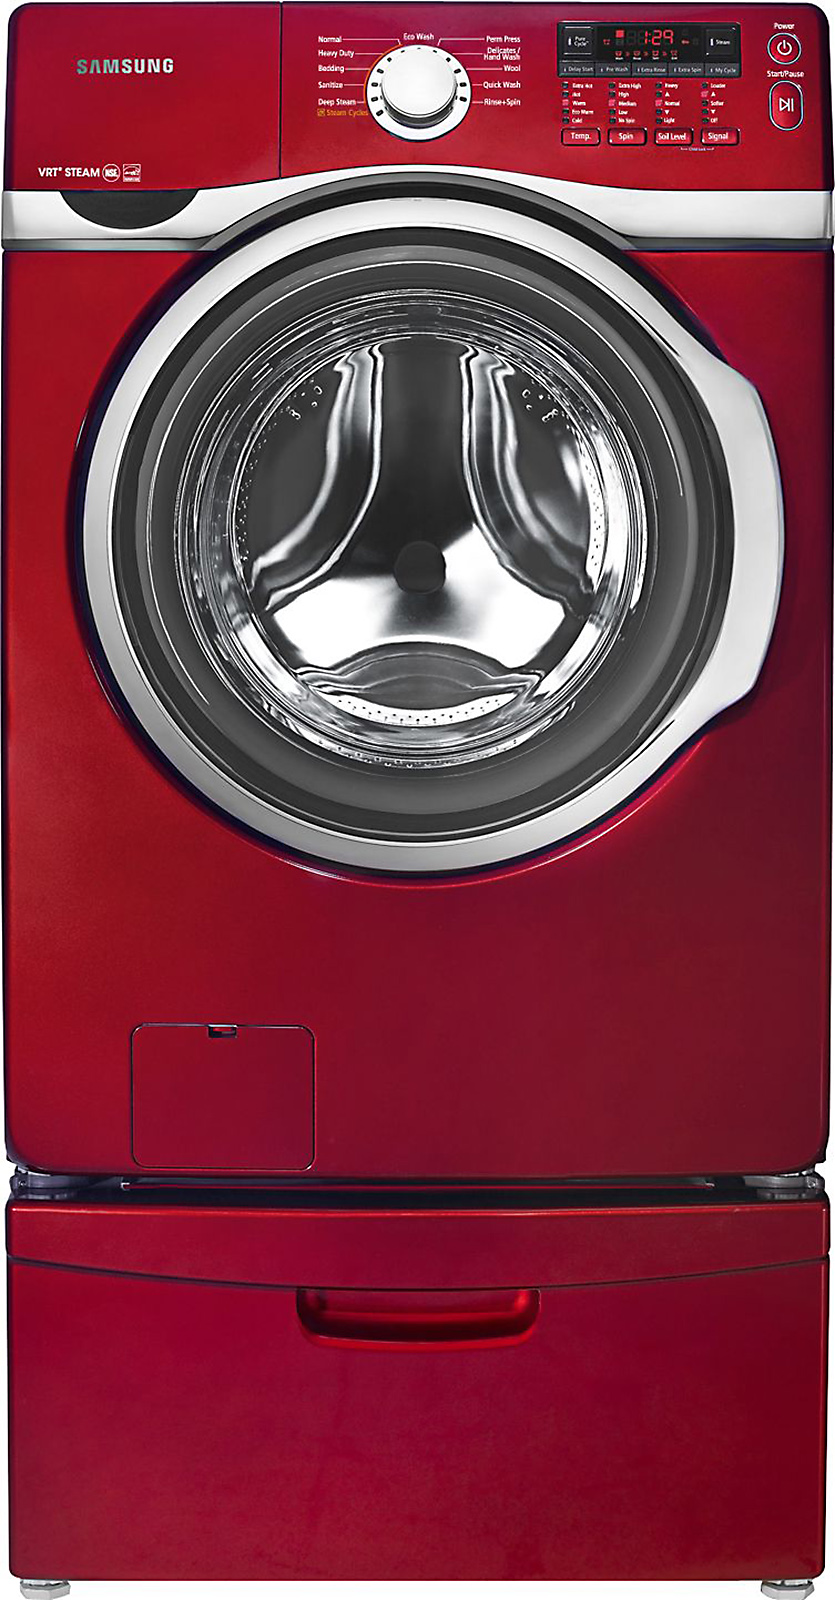 Samsung 3.9 cu. ft. Front-Load Washer - Red